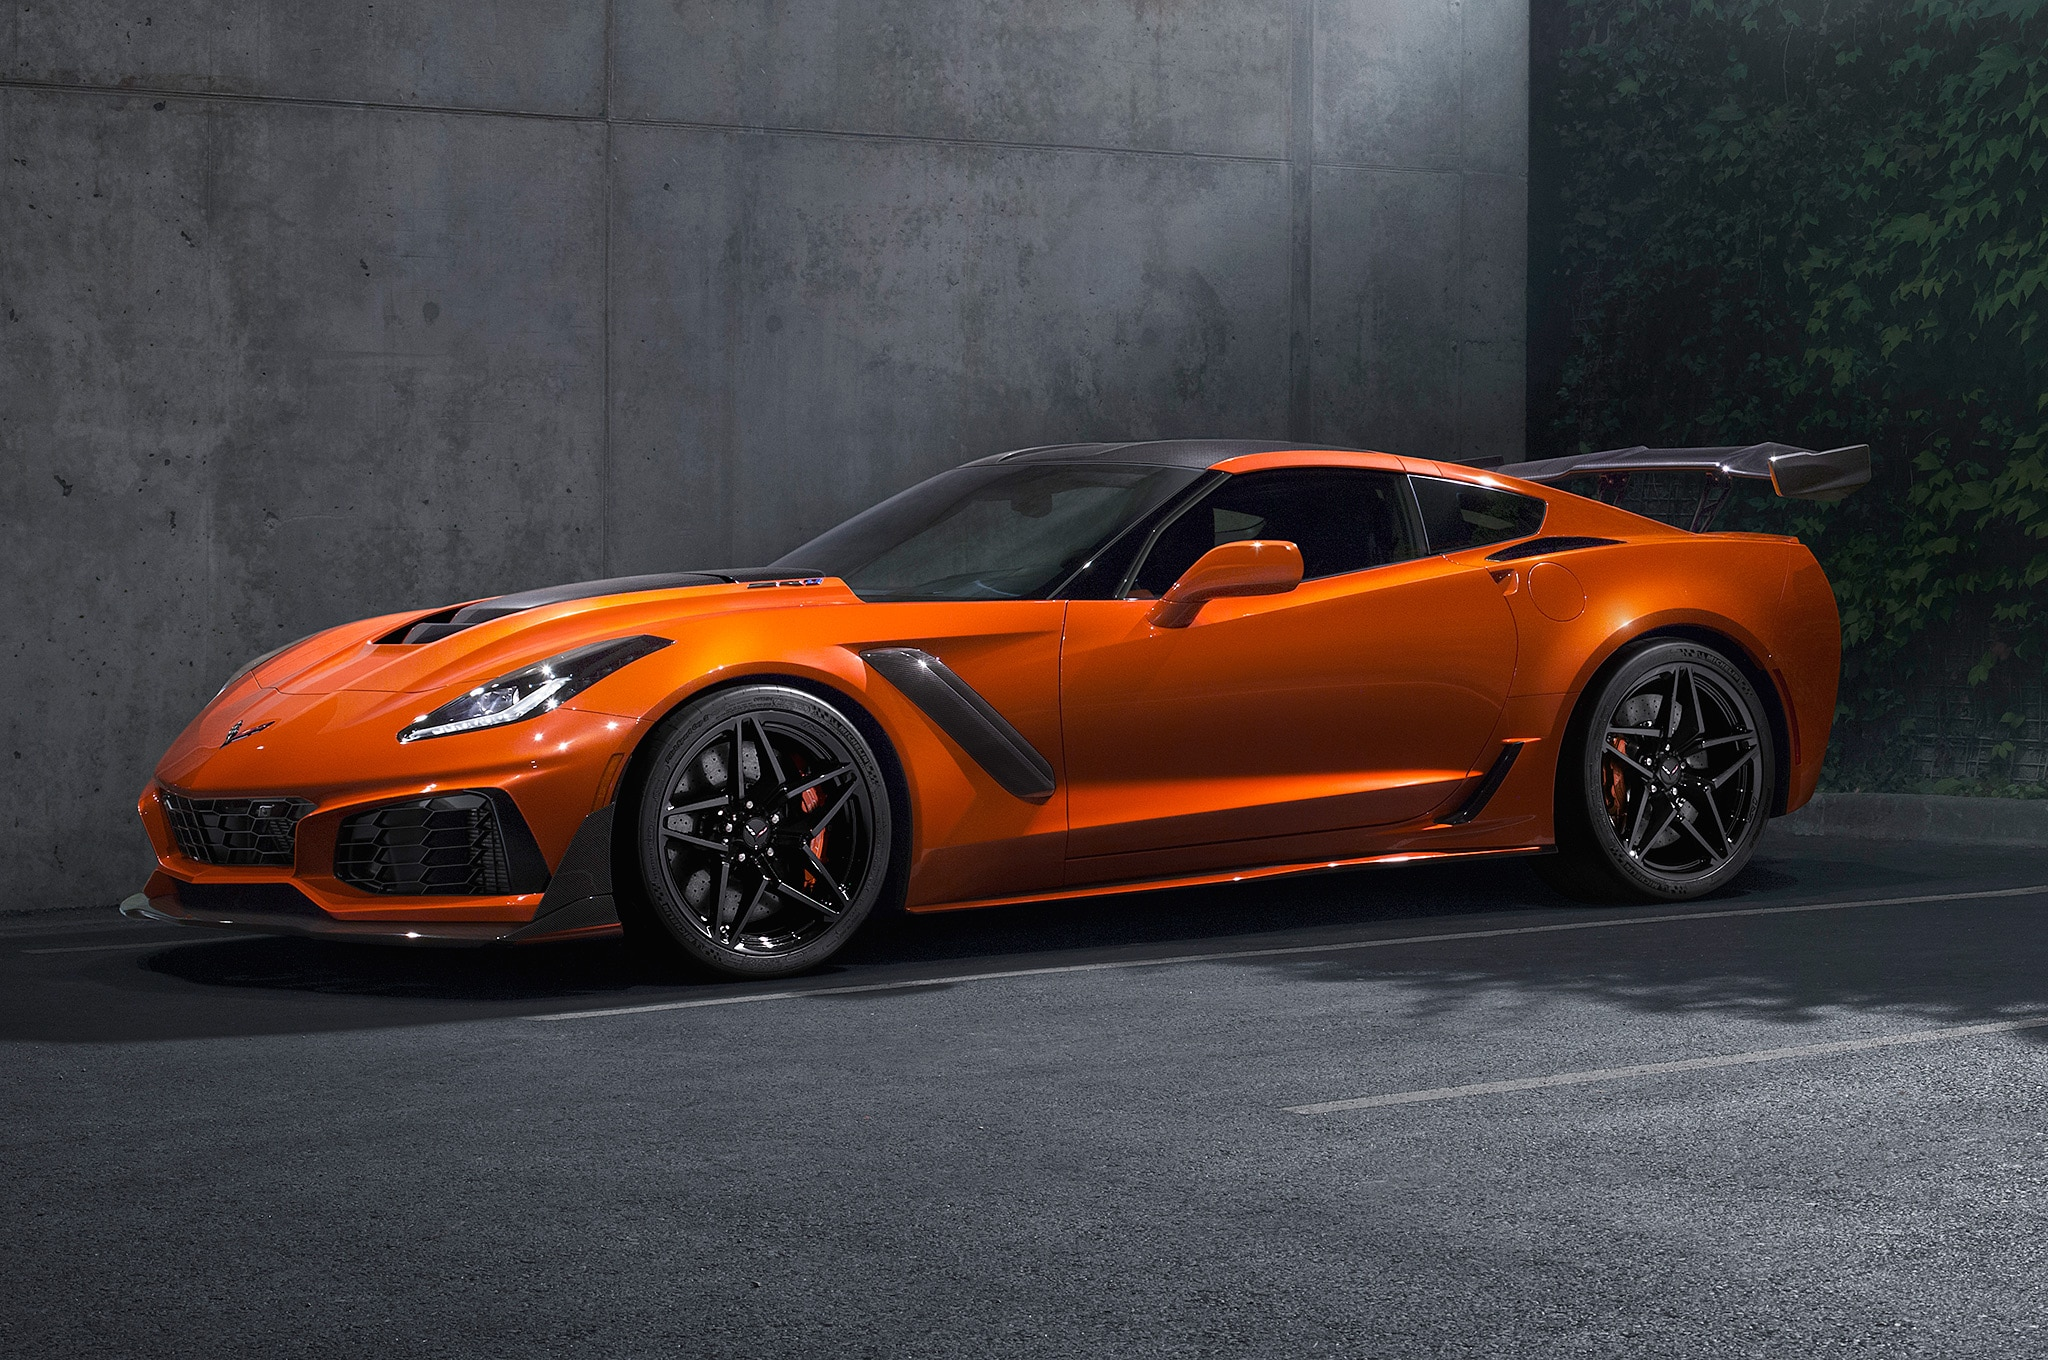 Chevrolet Corvette ZR1 is GM's most powerful vehicle ever